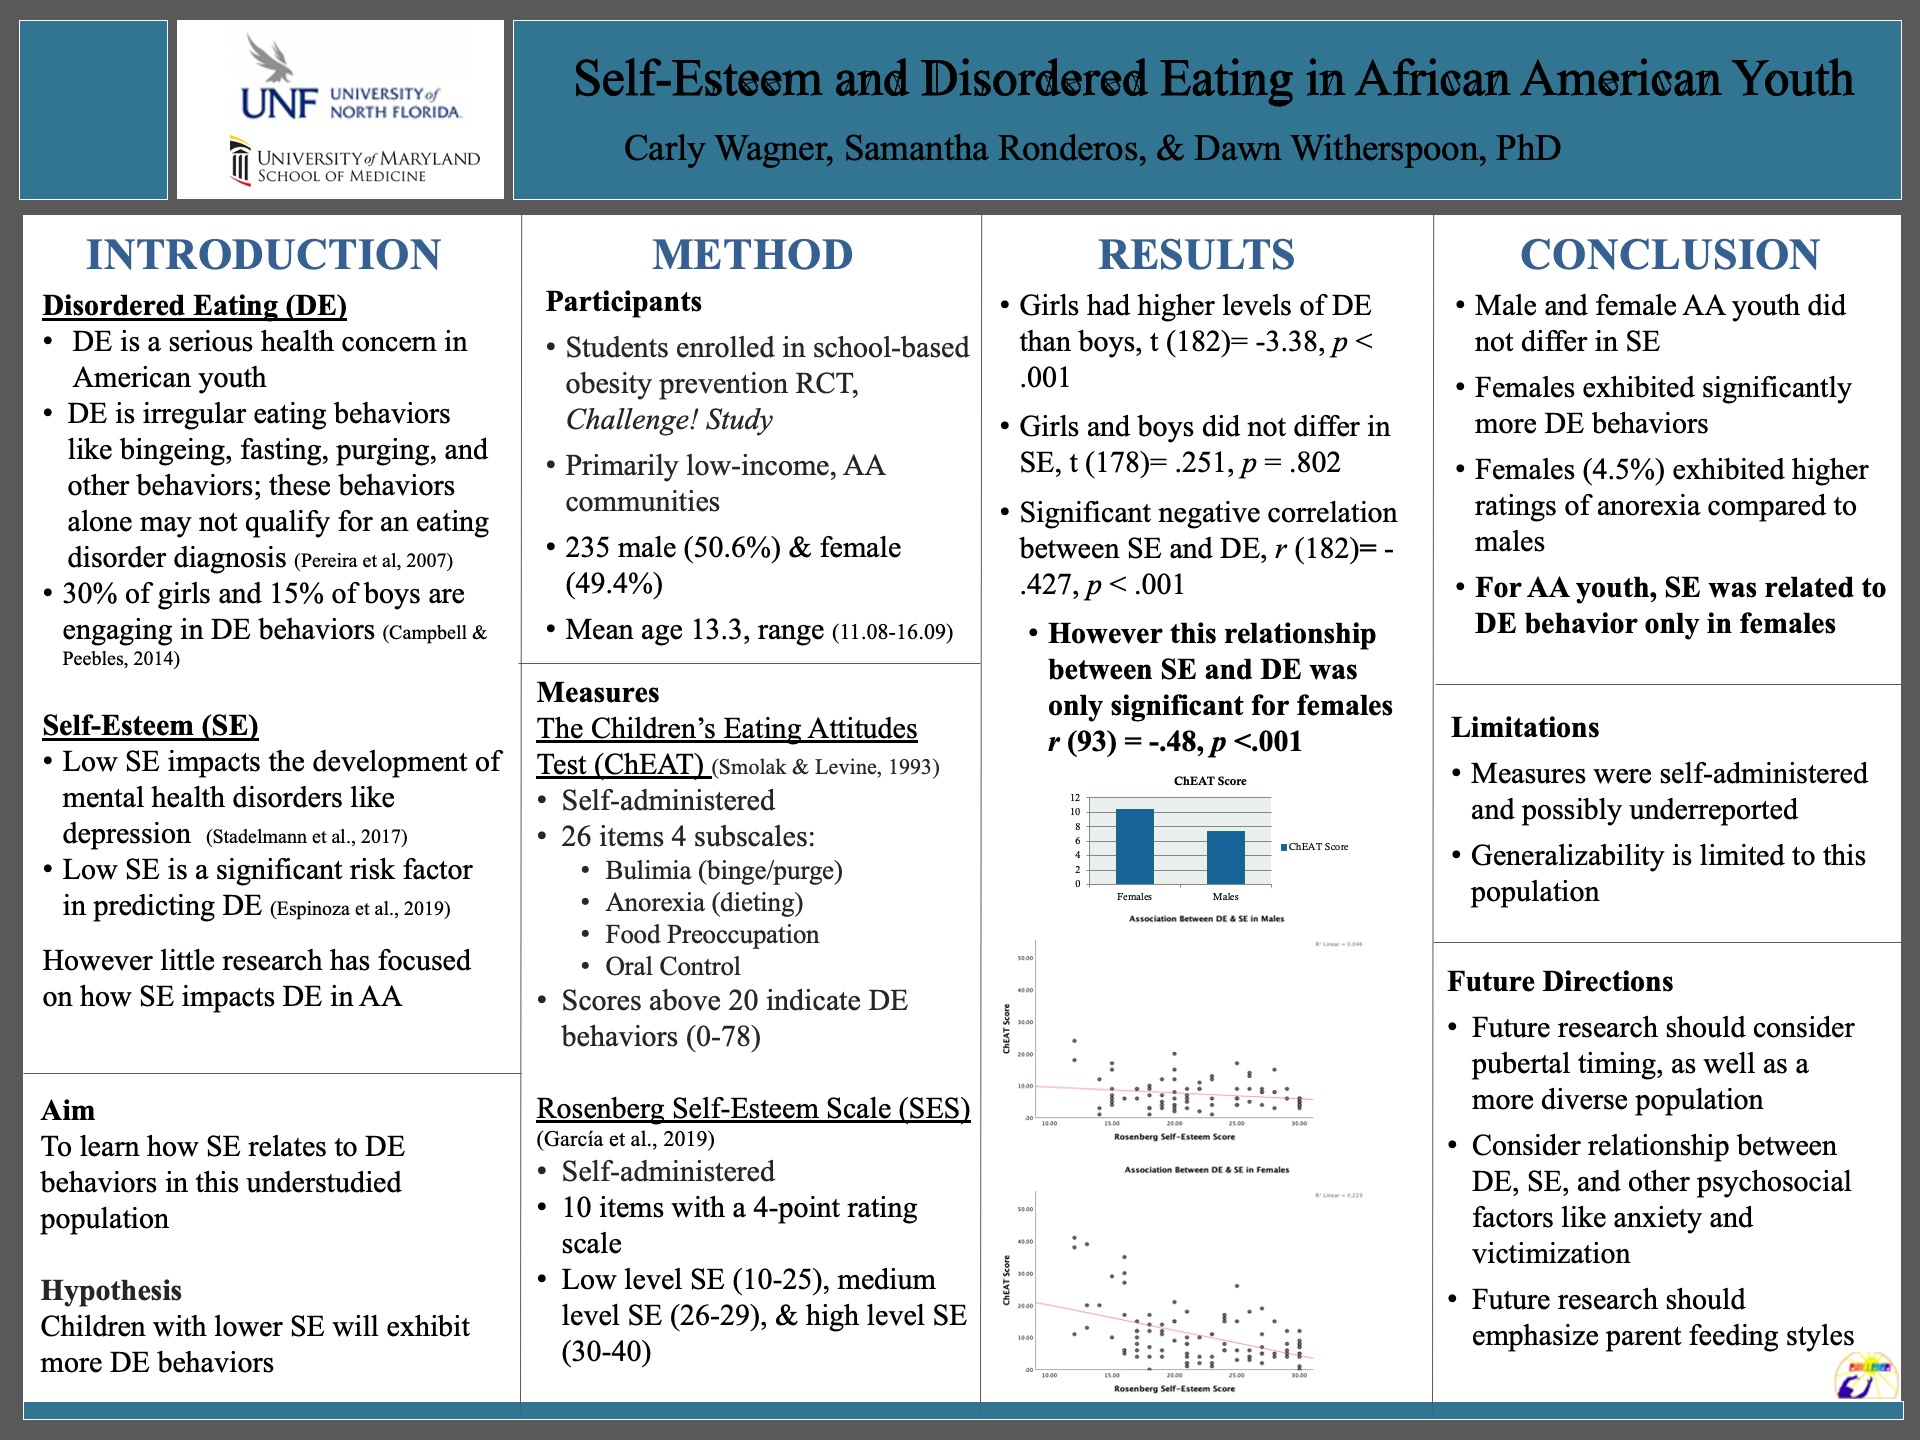 Self-Esteem and Disordered Eating in African American Youth poster